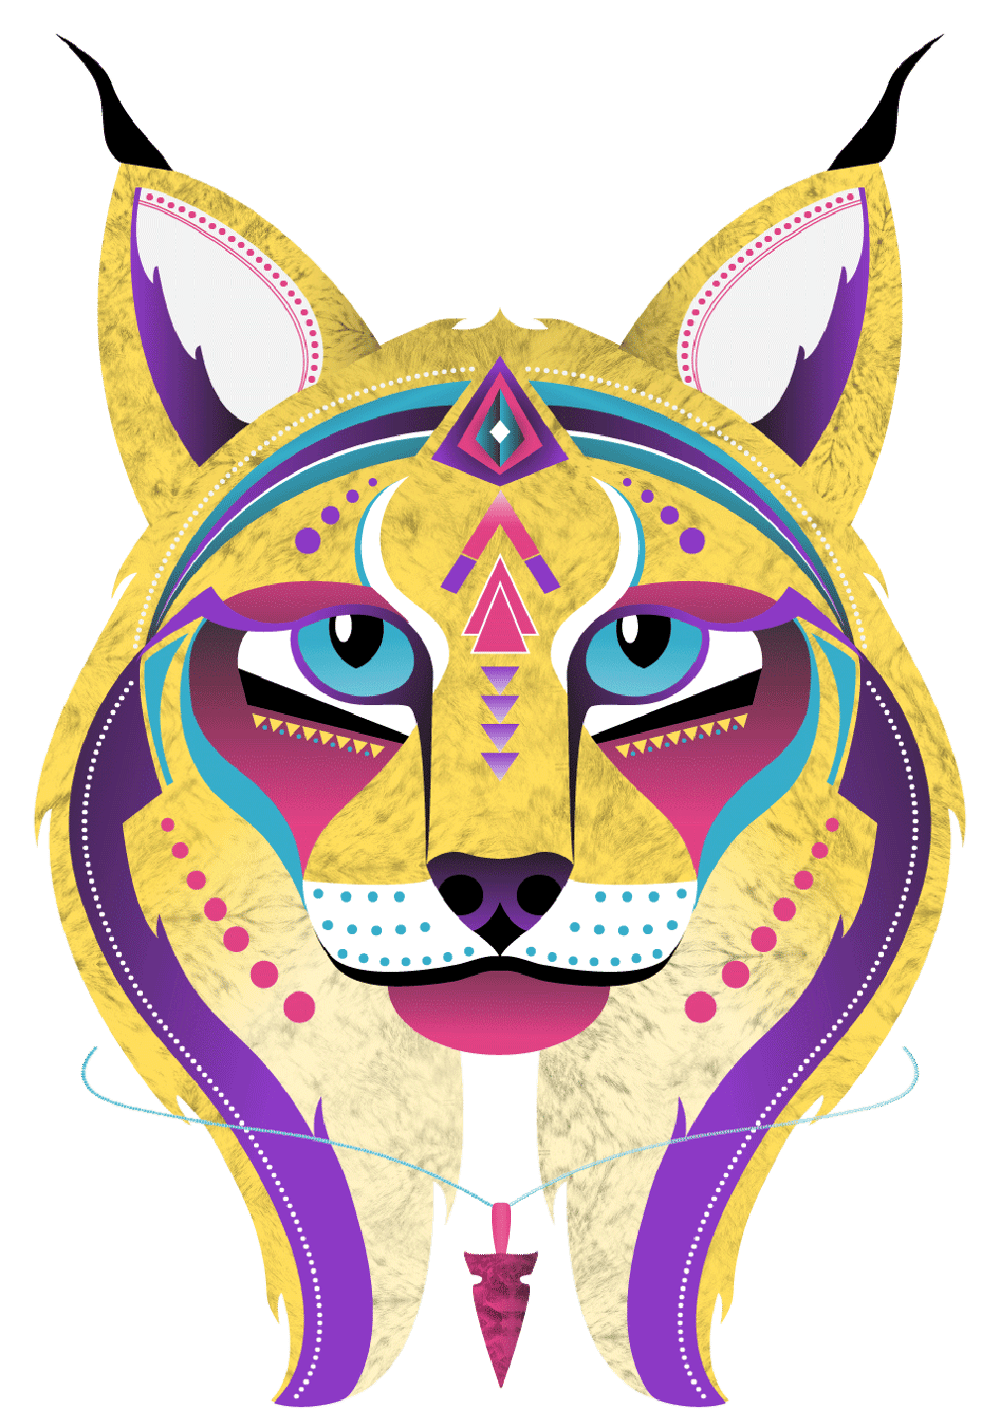 Lynx, by Linx - image 6 - student project